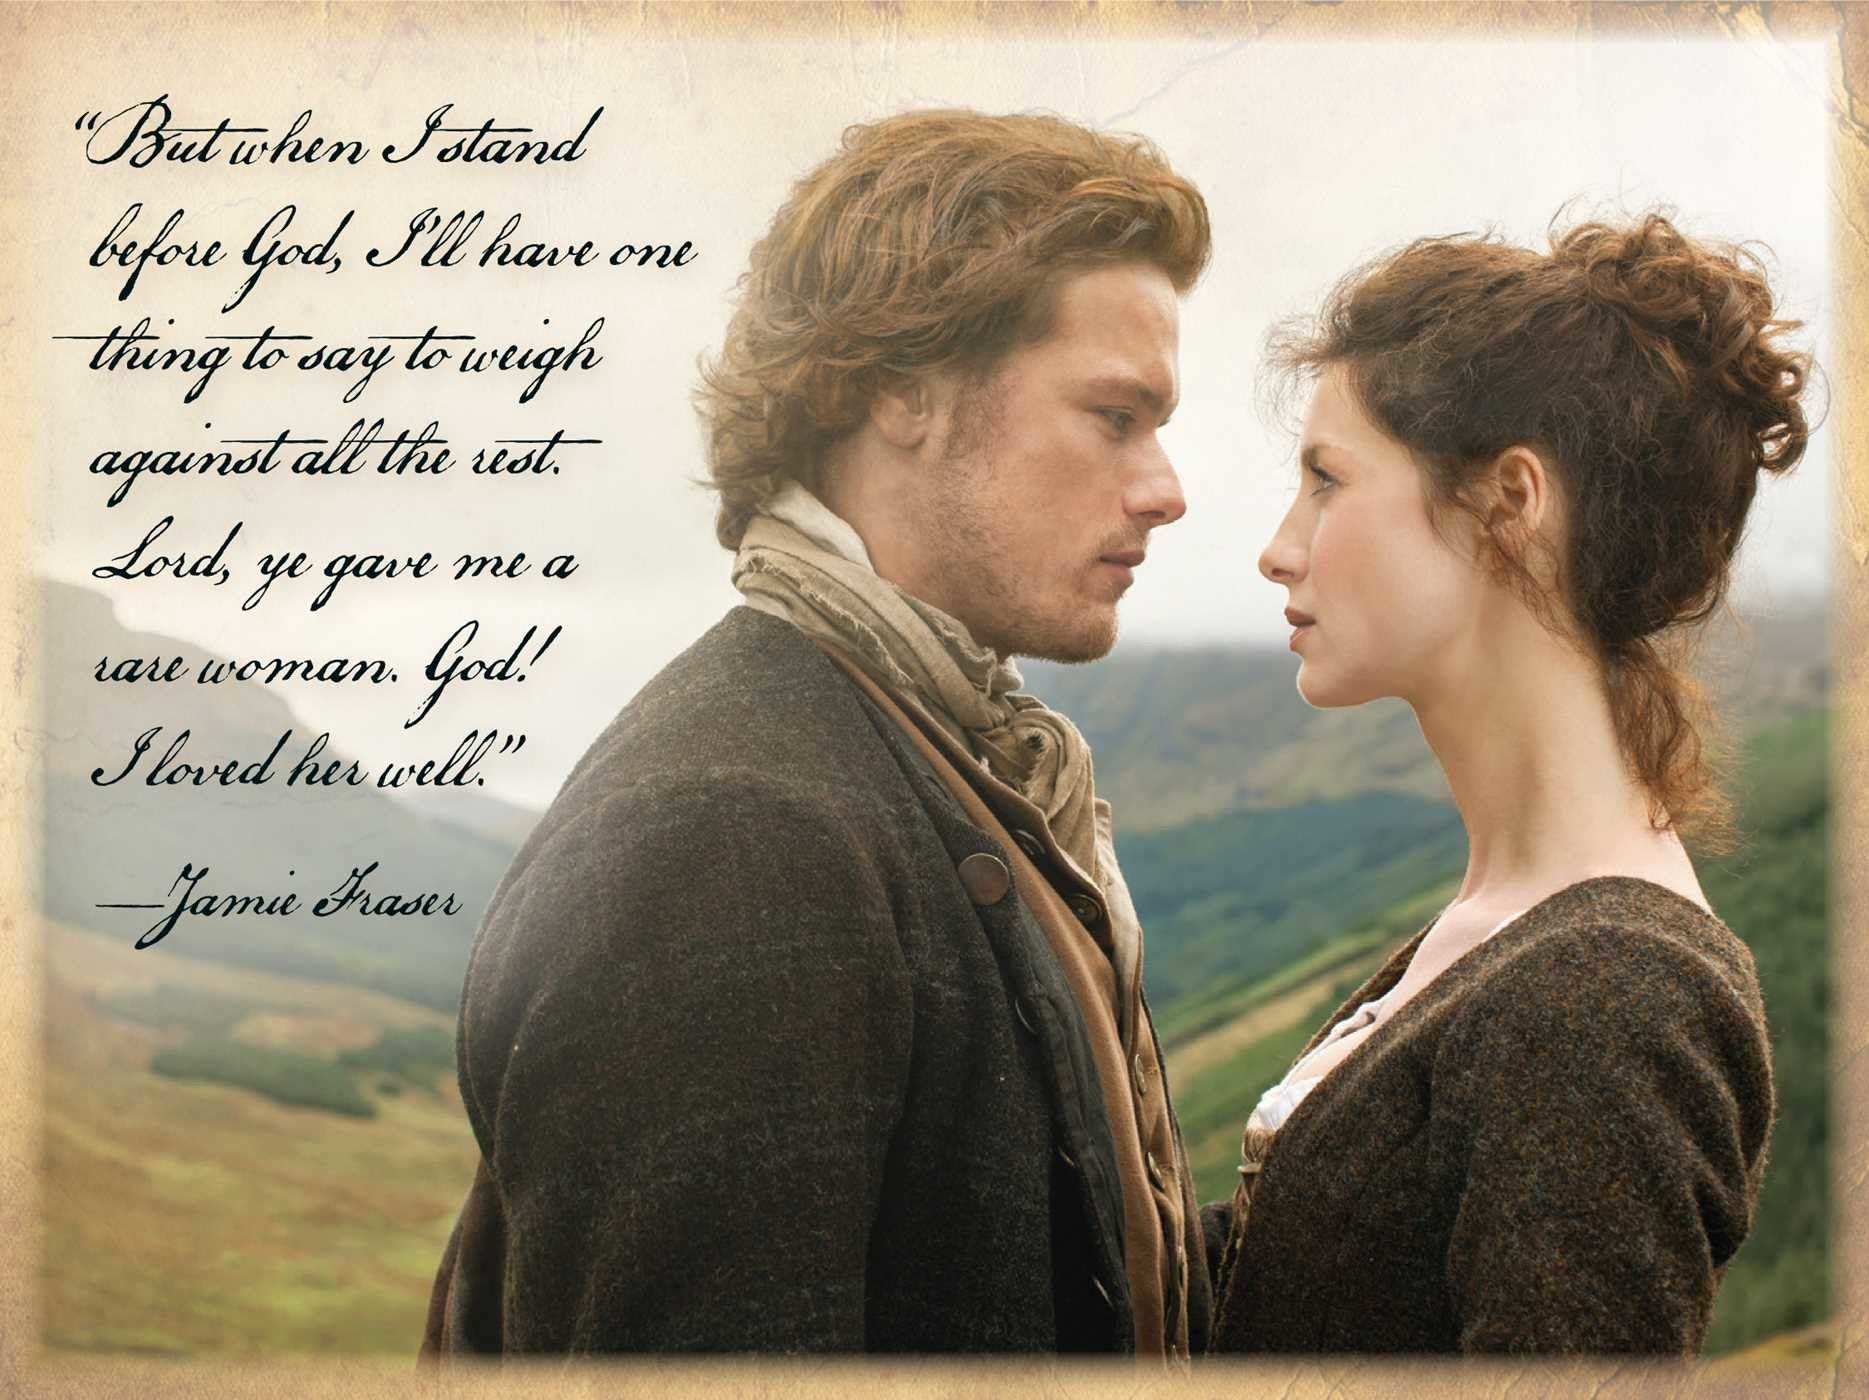 Outlander blank box notecards 9781683831488.in01